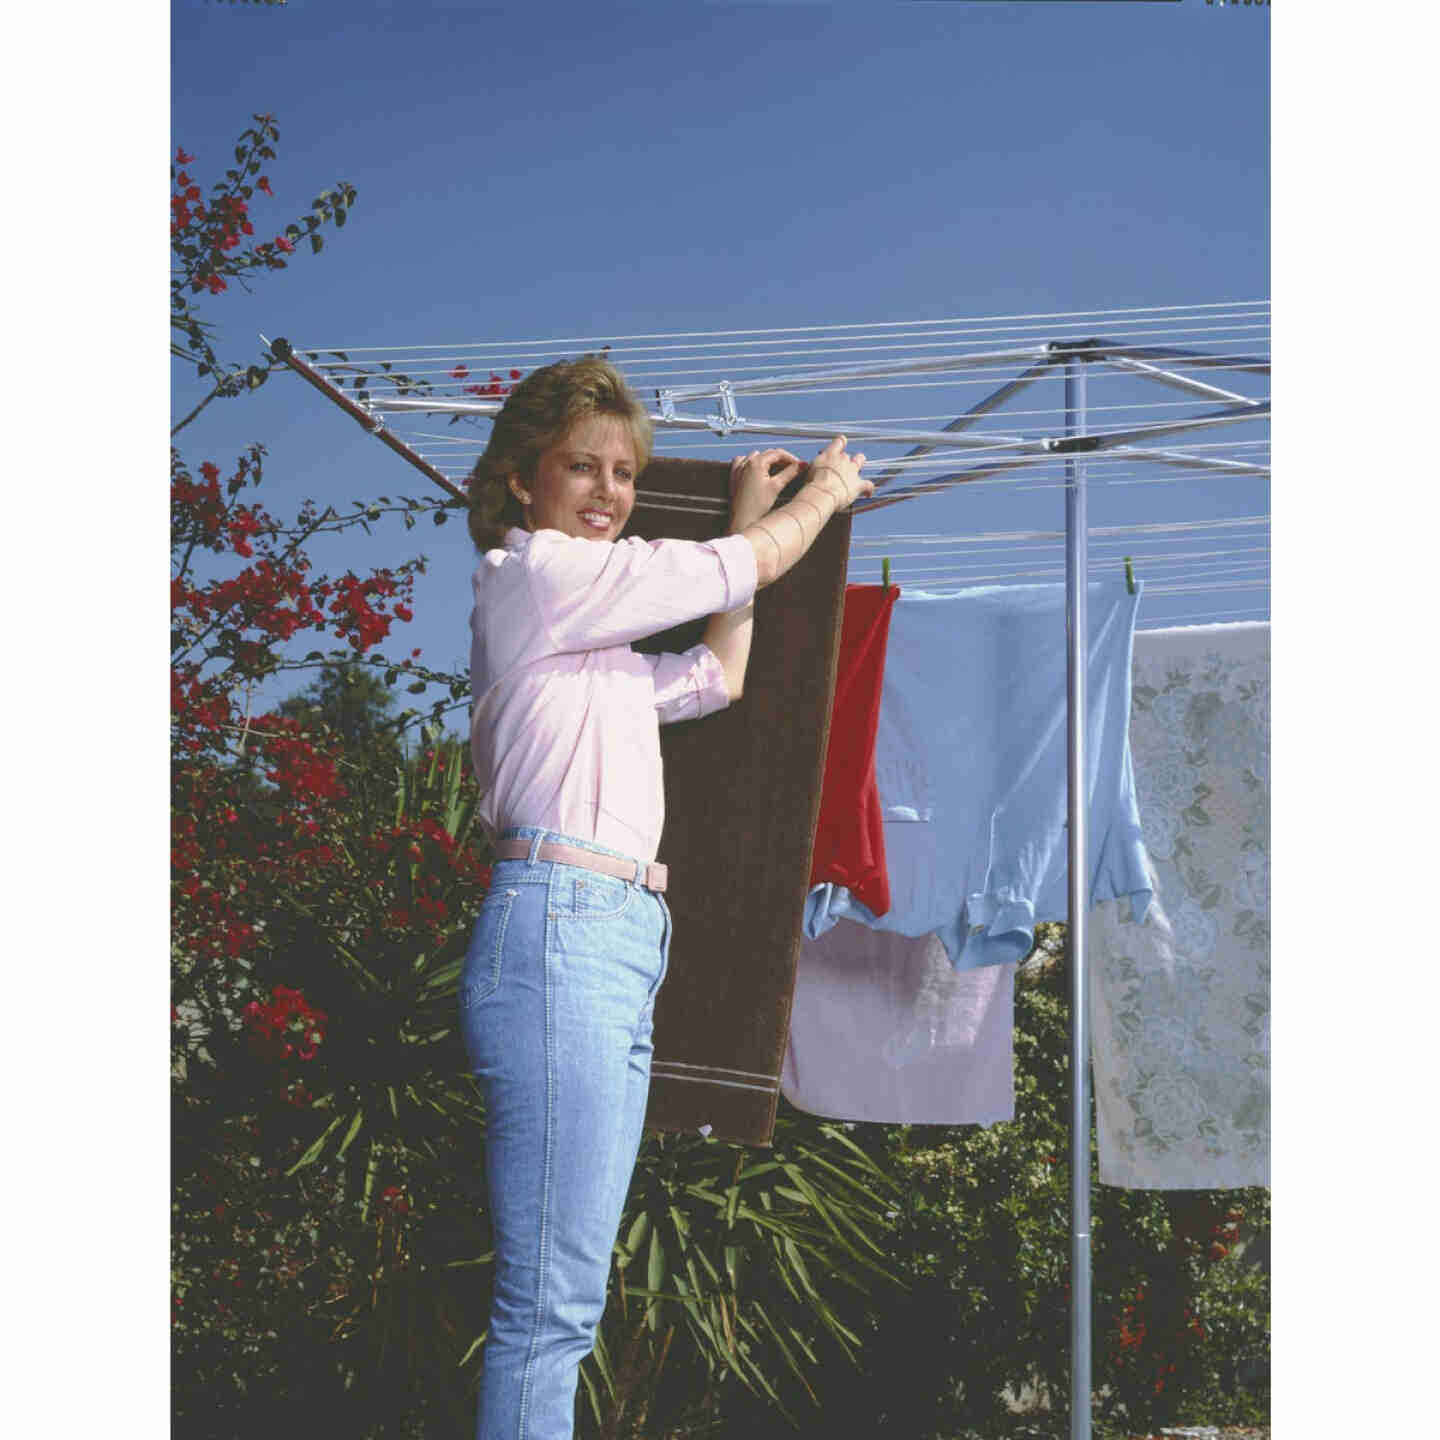 Household Essentials Sunline 72 In. x 72 In. 210 Ft. Drying Area Umbrella Style Clothes Dryer Image 2